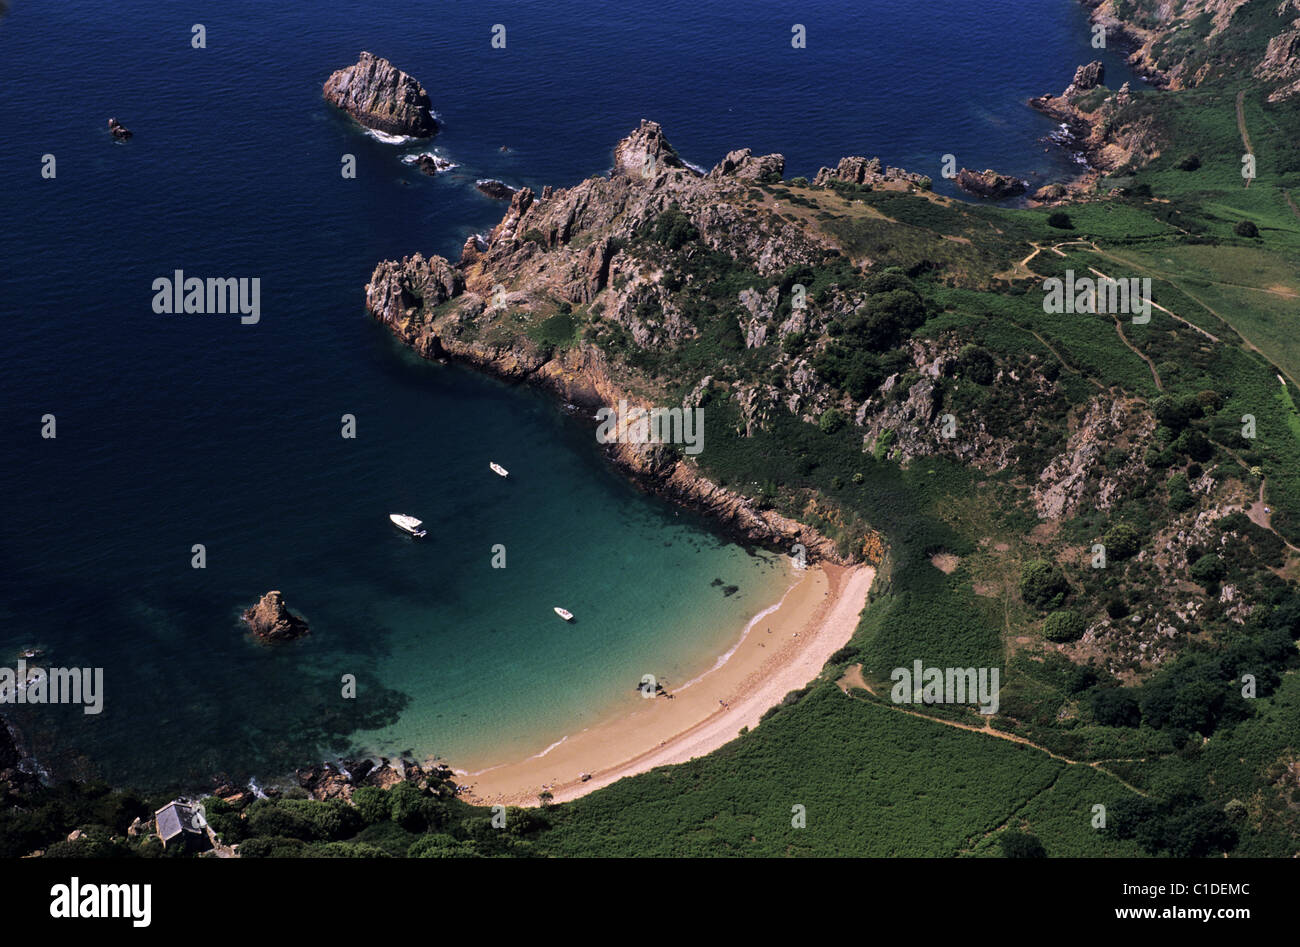 United Kingdom, Channel Islands, Jersey Island, the well preserved Beauport Bay (aerial view) - Stock Image